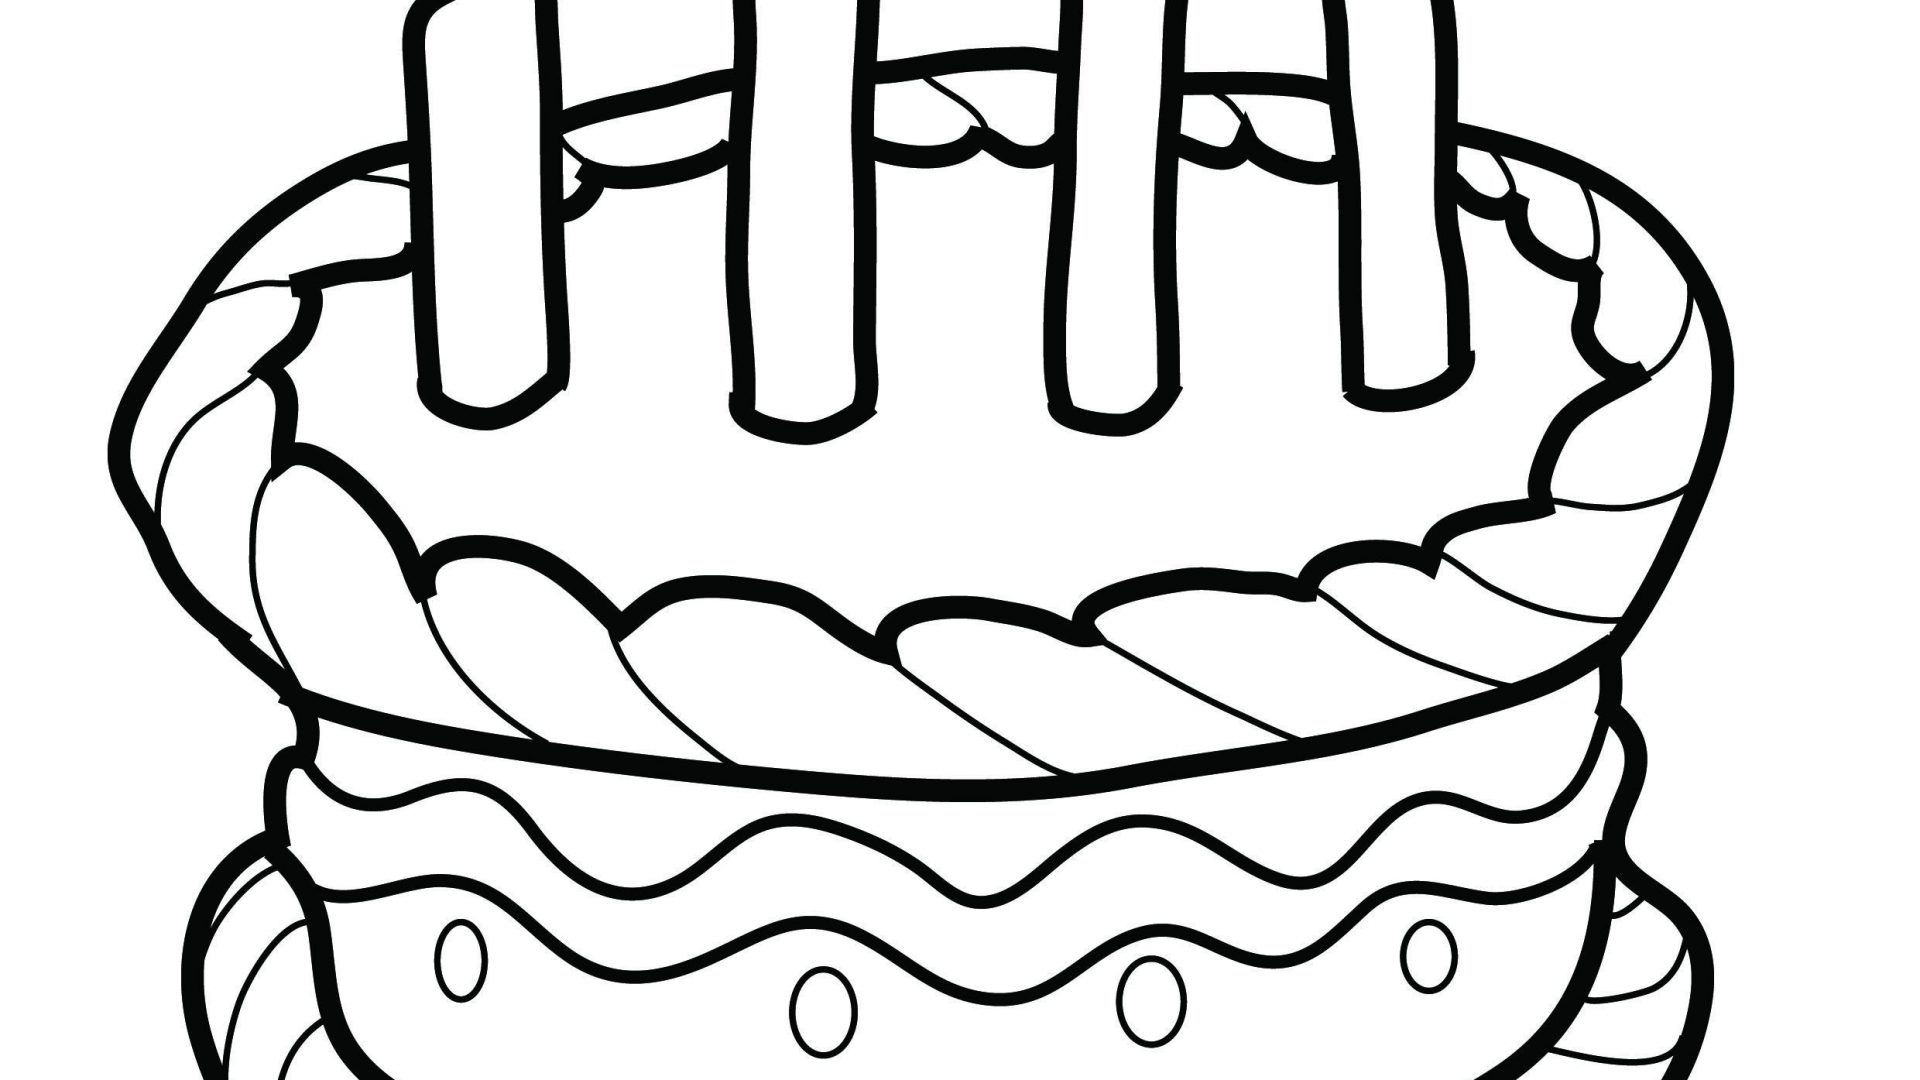 1920x1080 Cupcake Candle Coloring Page With Great Pages Printable To Color